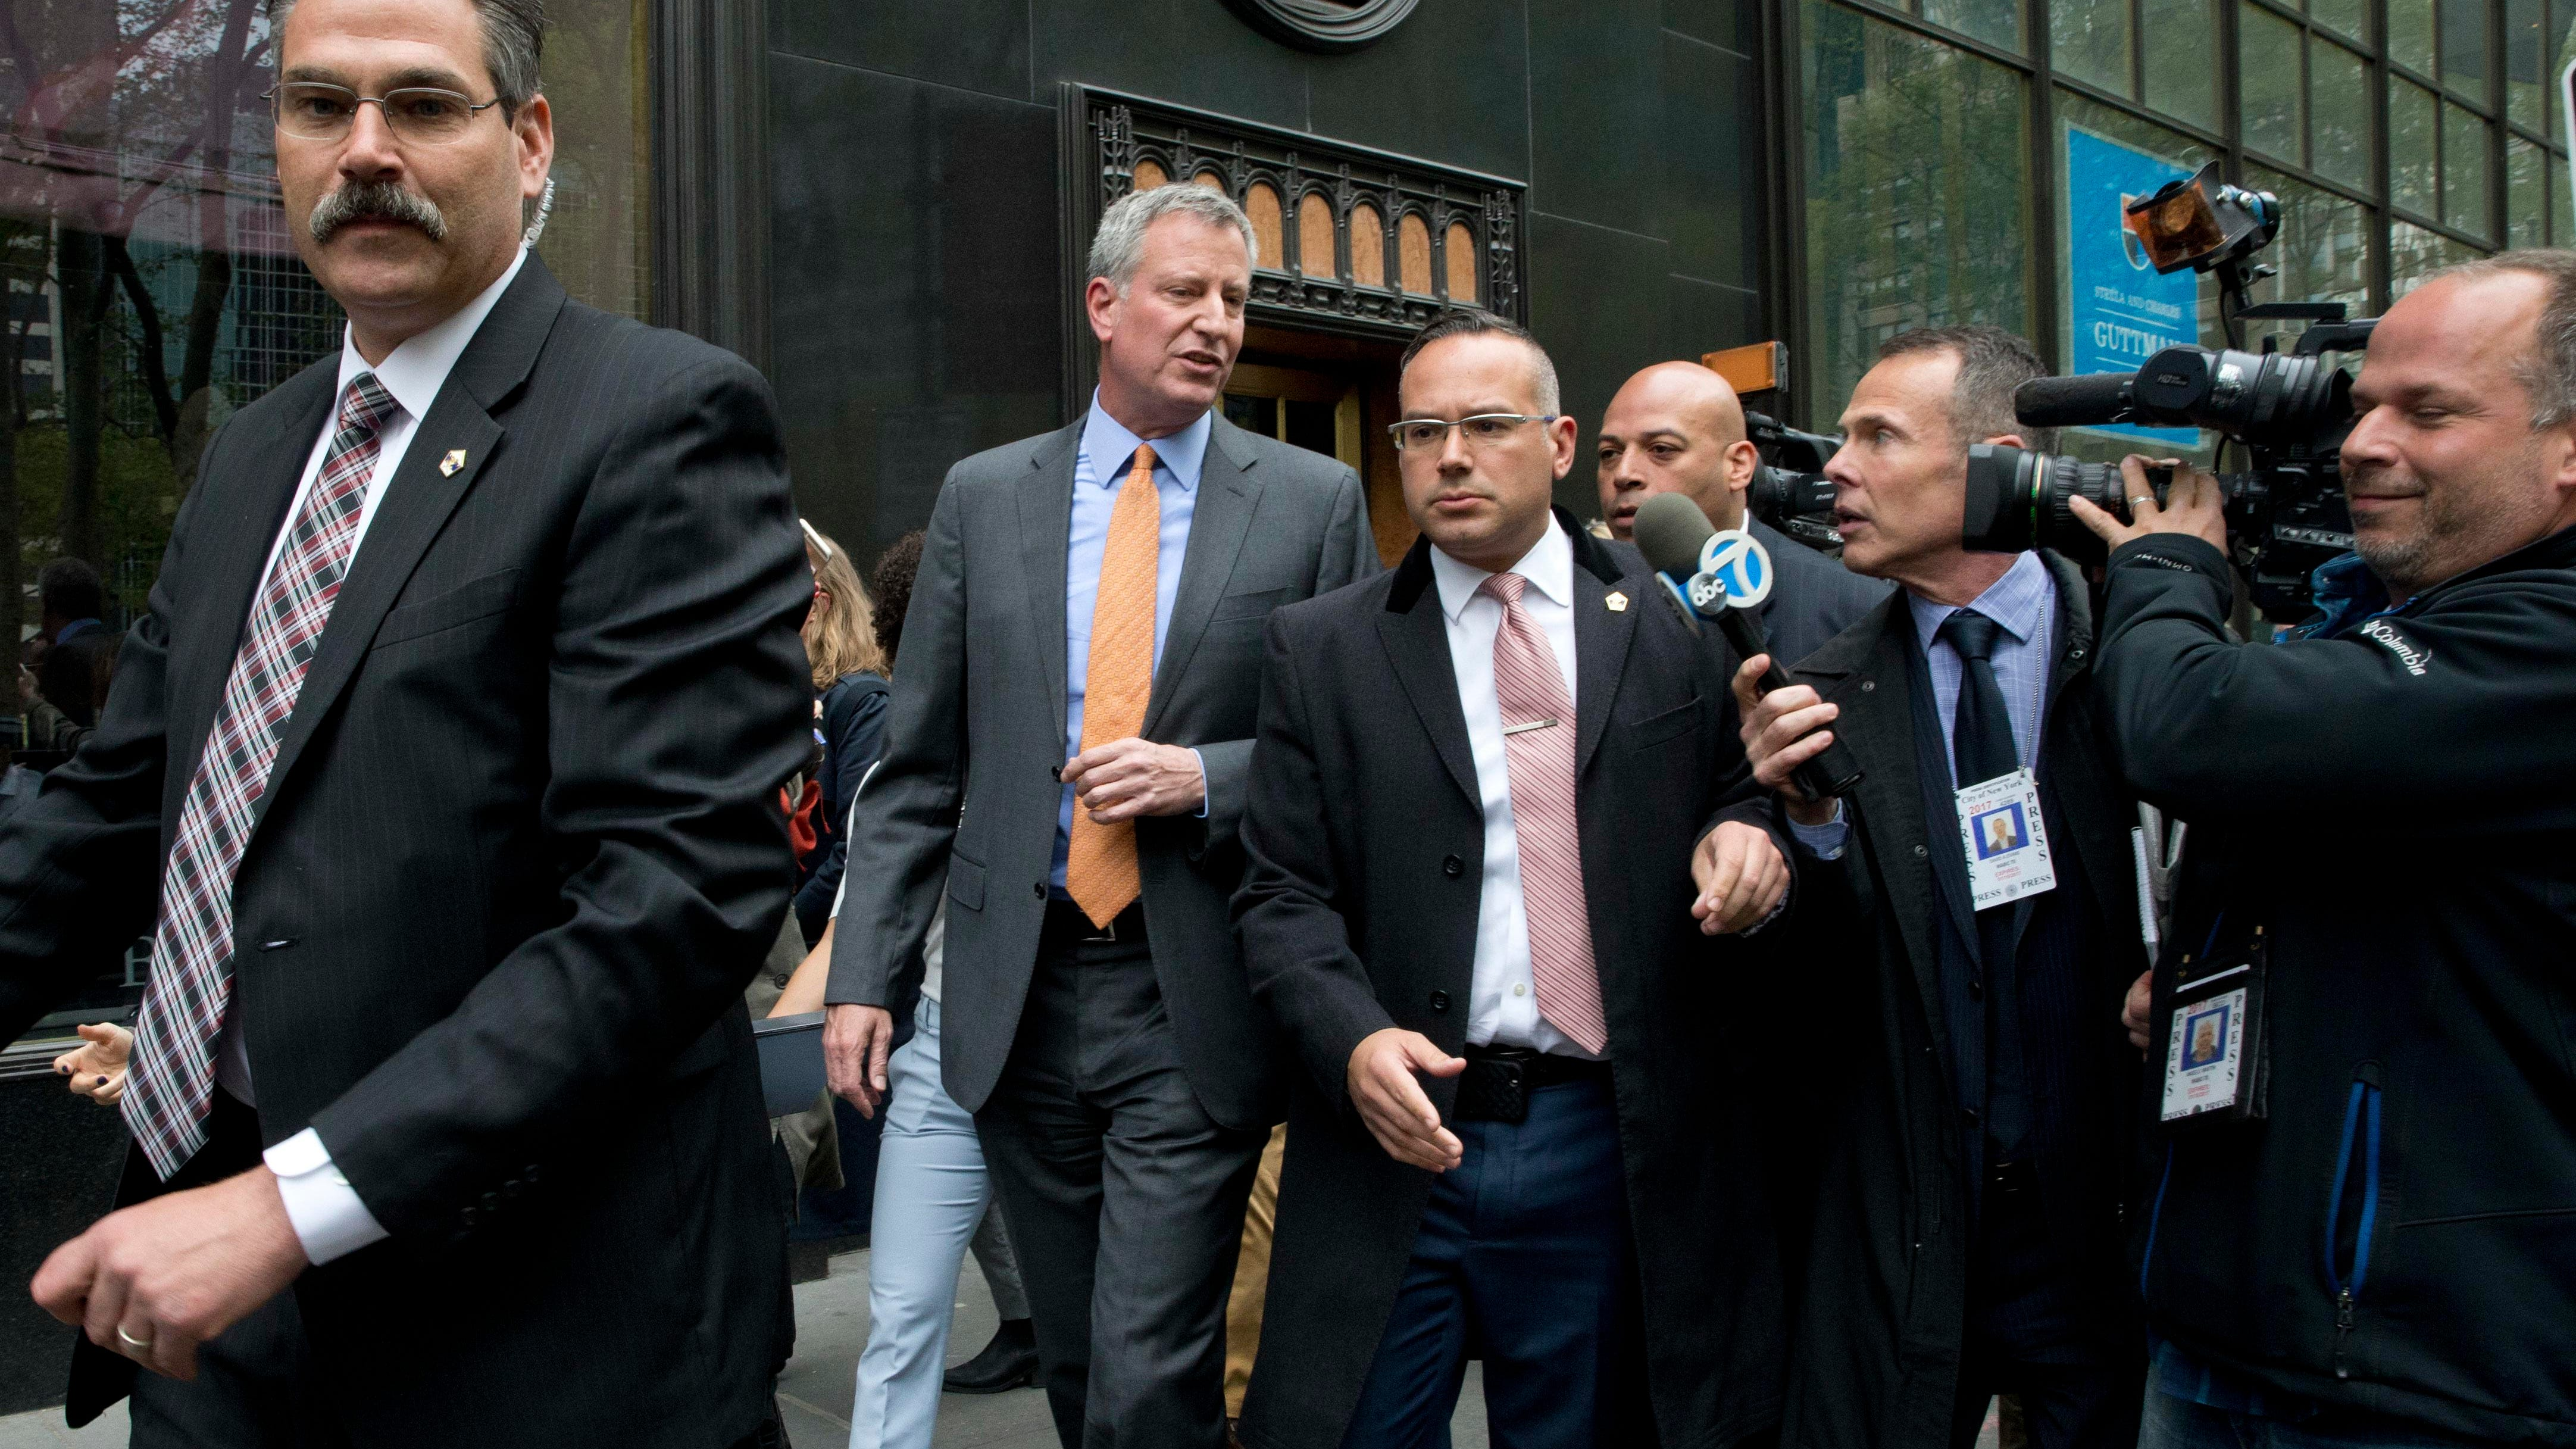 New York City Mayor Bill de Blasio, second from left, is surrounded by security and followed by reporters as he leaves an event April 28, 2016, in New York.